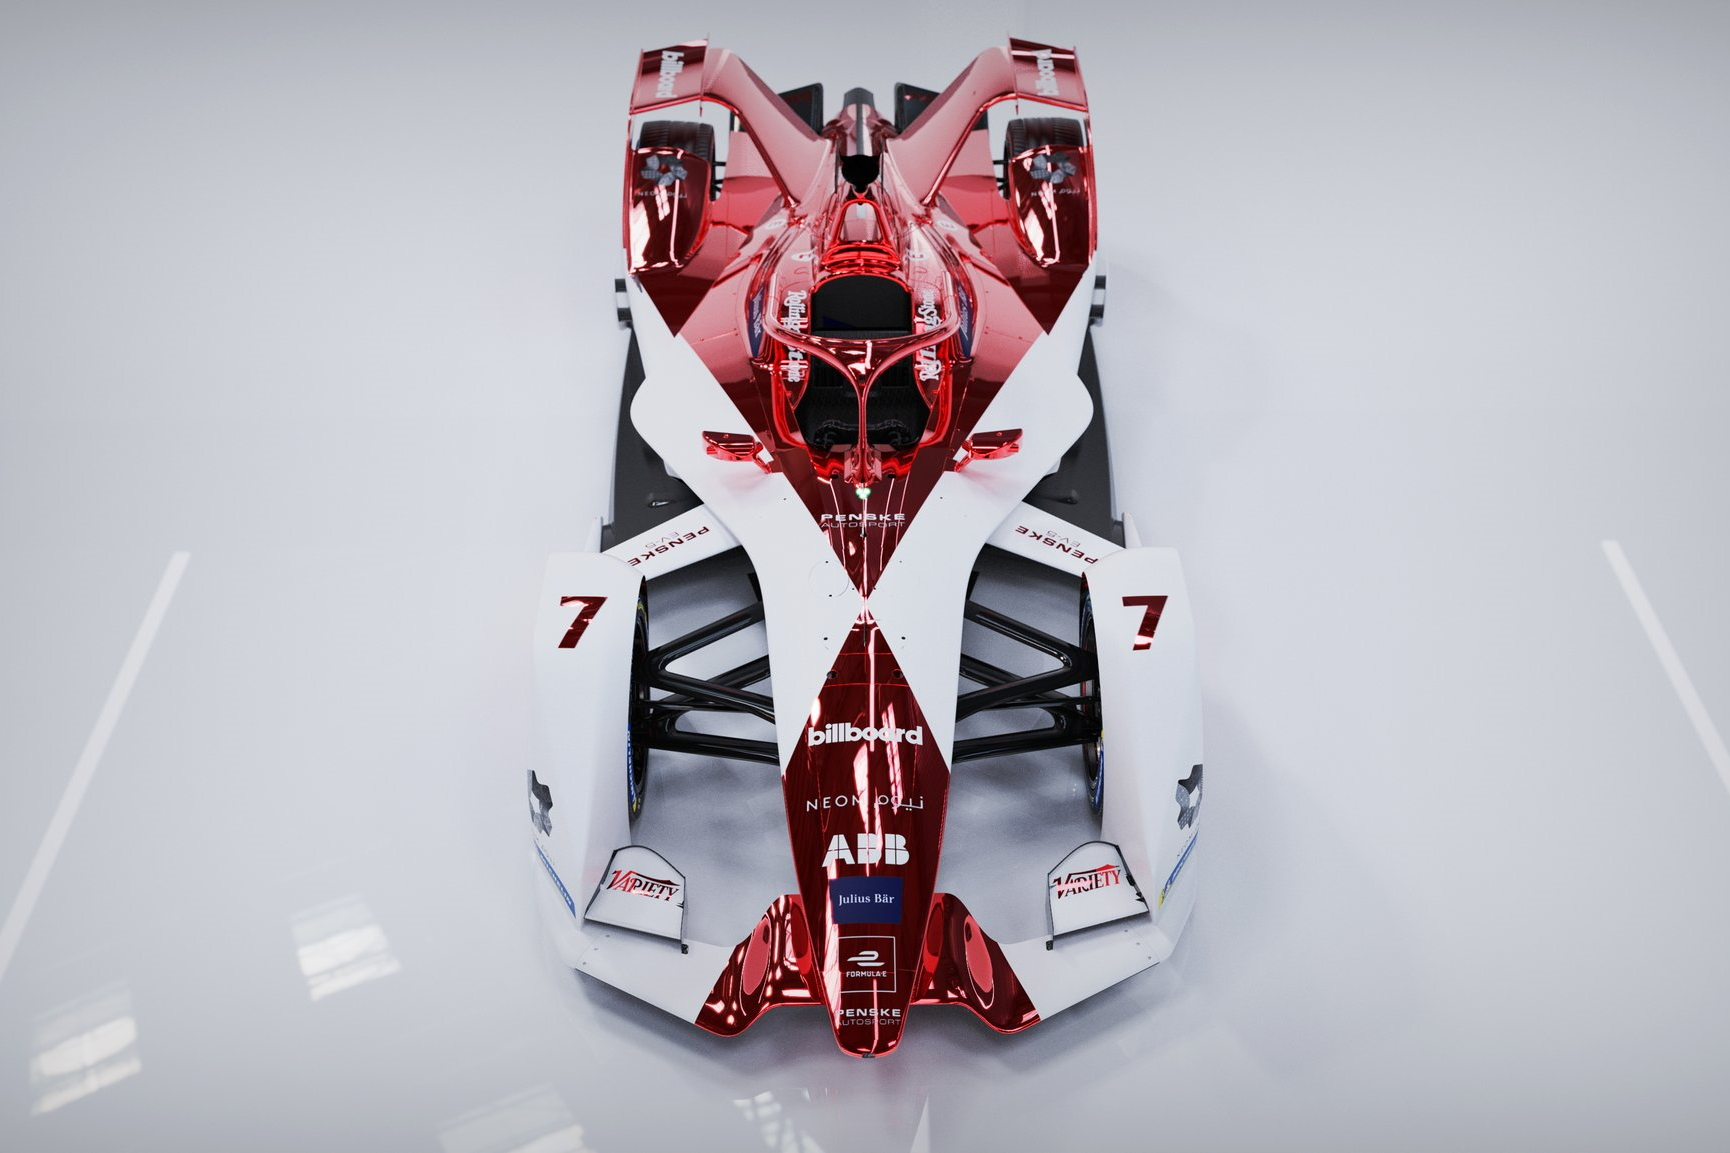 Dragon-Racing-Livery-2021-top-view